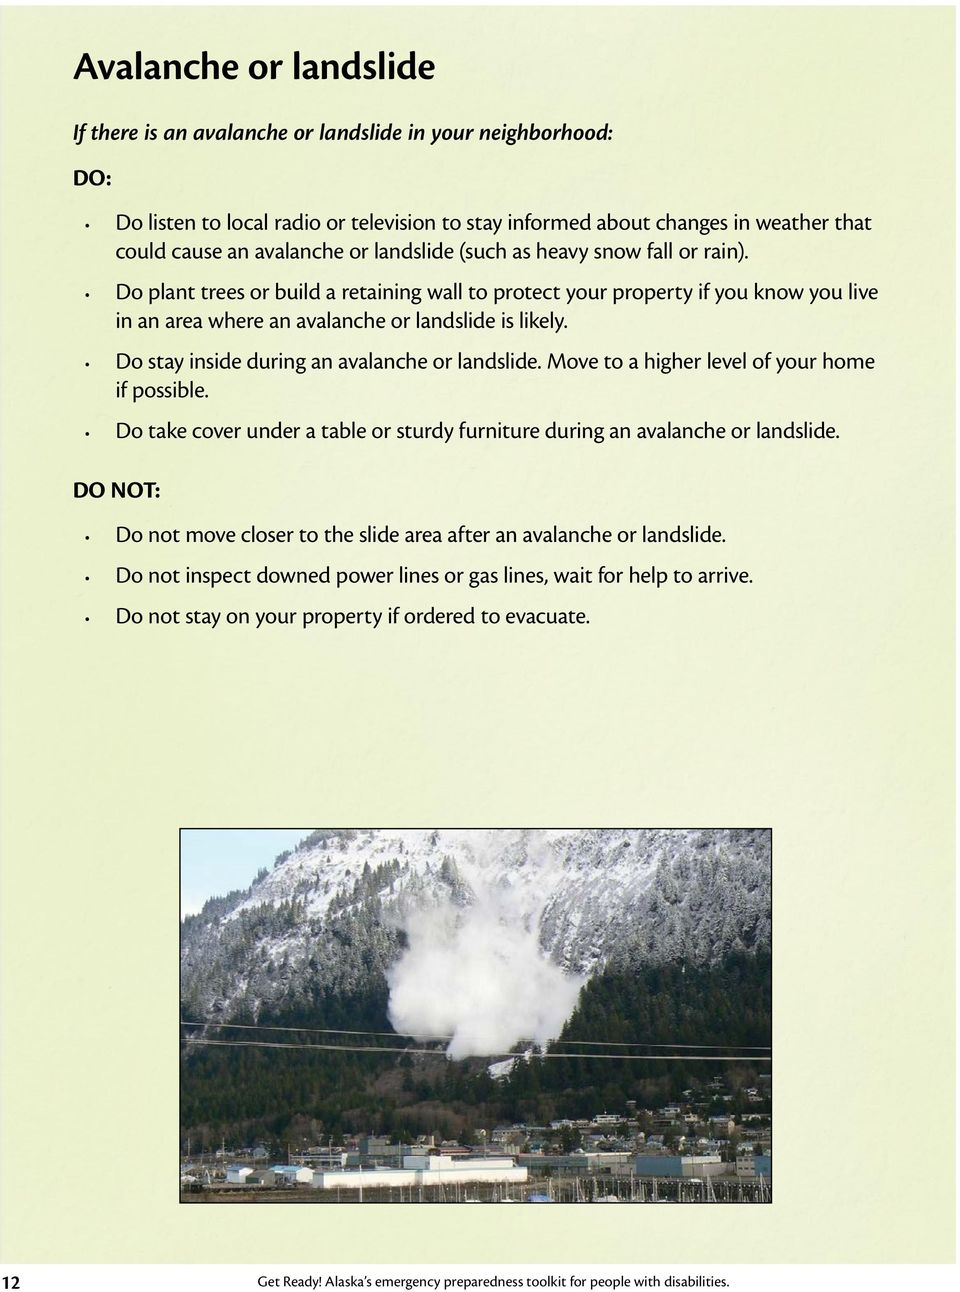 Do stay inside during an avalanche or landslide. Move to a higher level of your home if possible. Do take cover under a table or sturdy furniture during an avalanche or landslide.